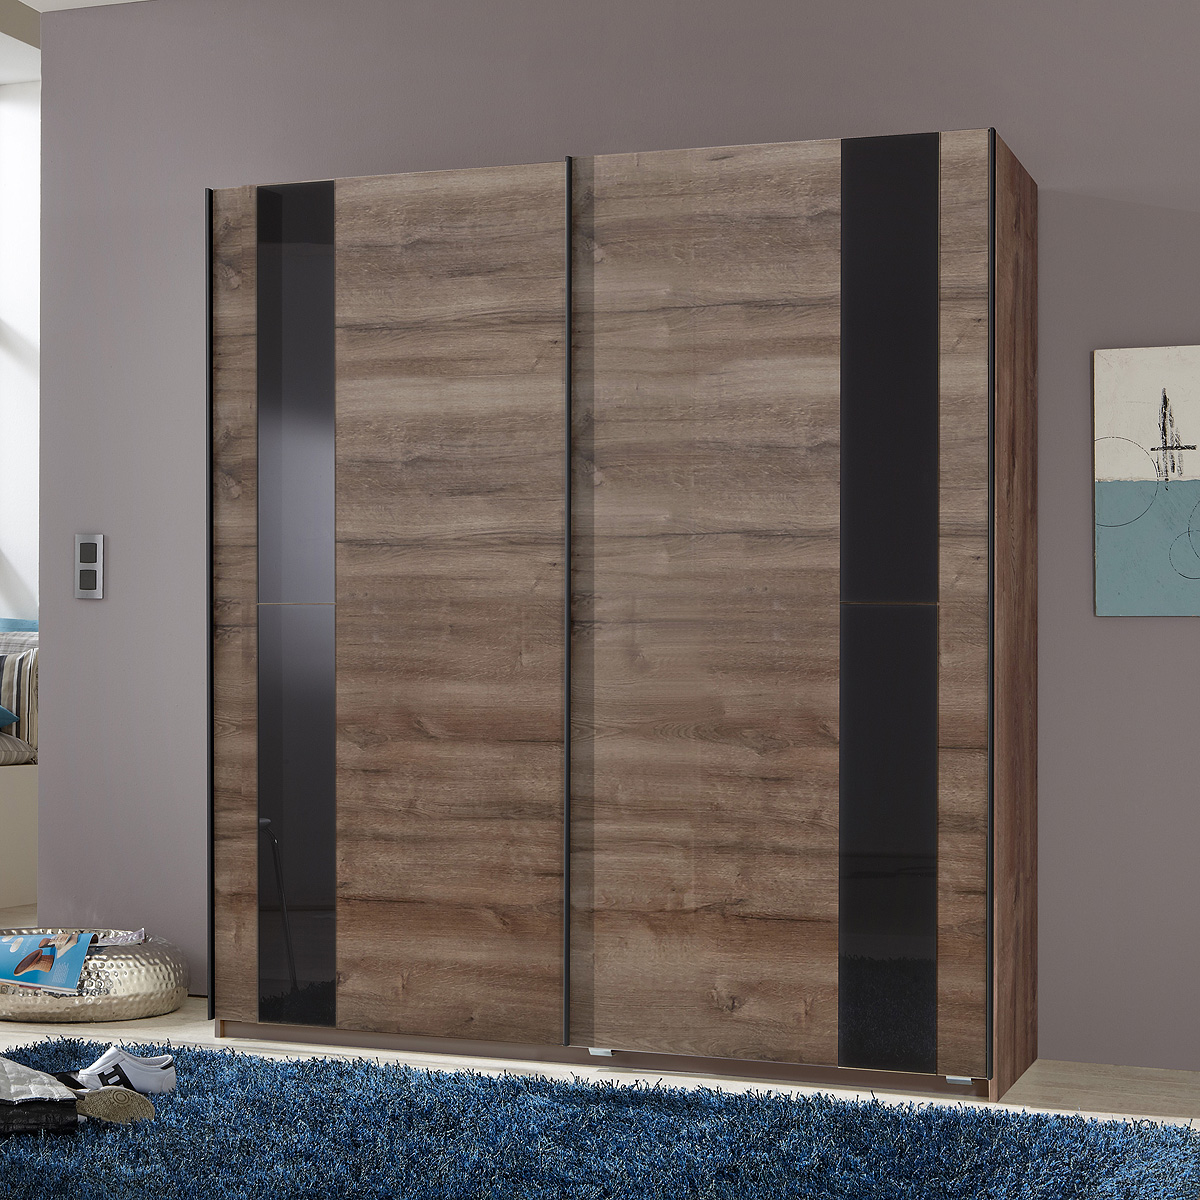 schwebet renschrank kiel schrank wei anthrazit schlammeiche glas grau schwarz ebay. Black Bedroom Furniture Sets. Home Design Ideas